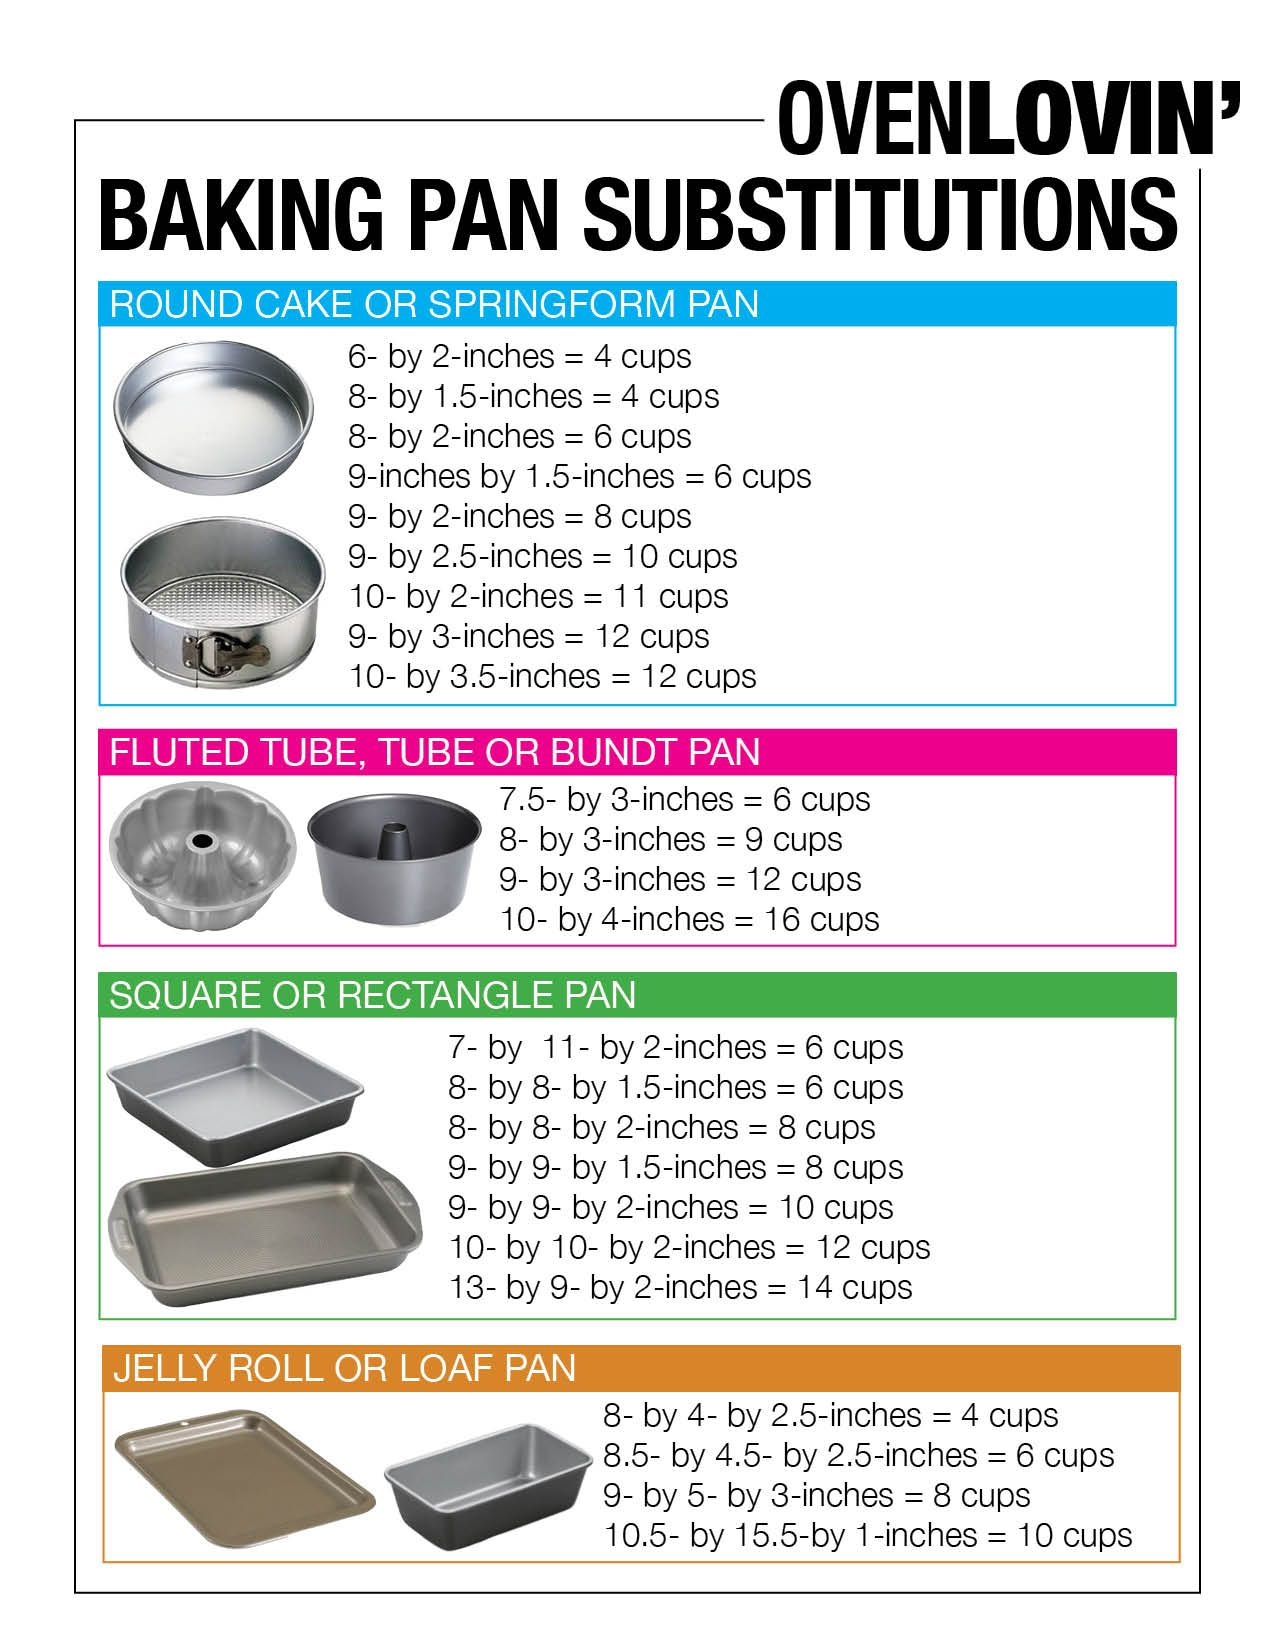 9 Inch Round Cake Pan To Square Cake Recipe